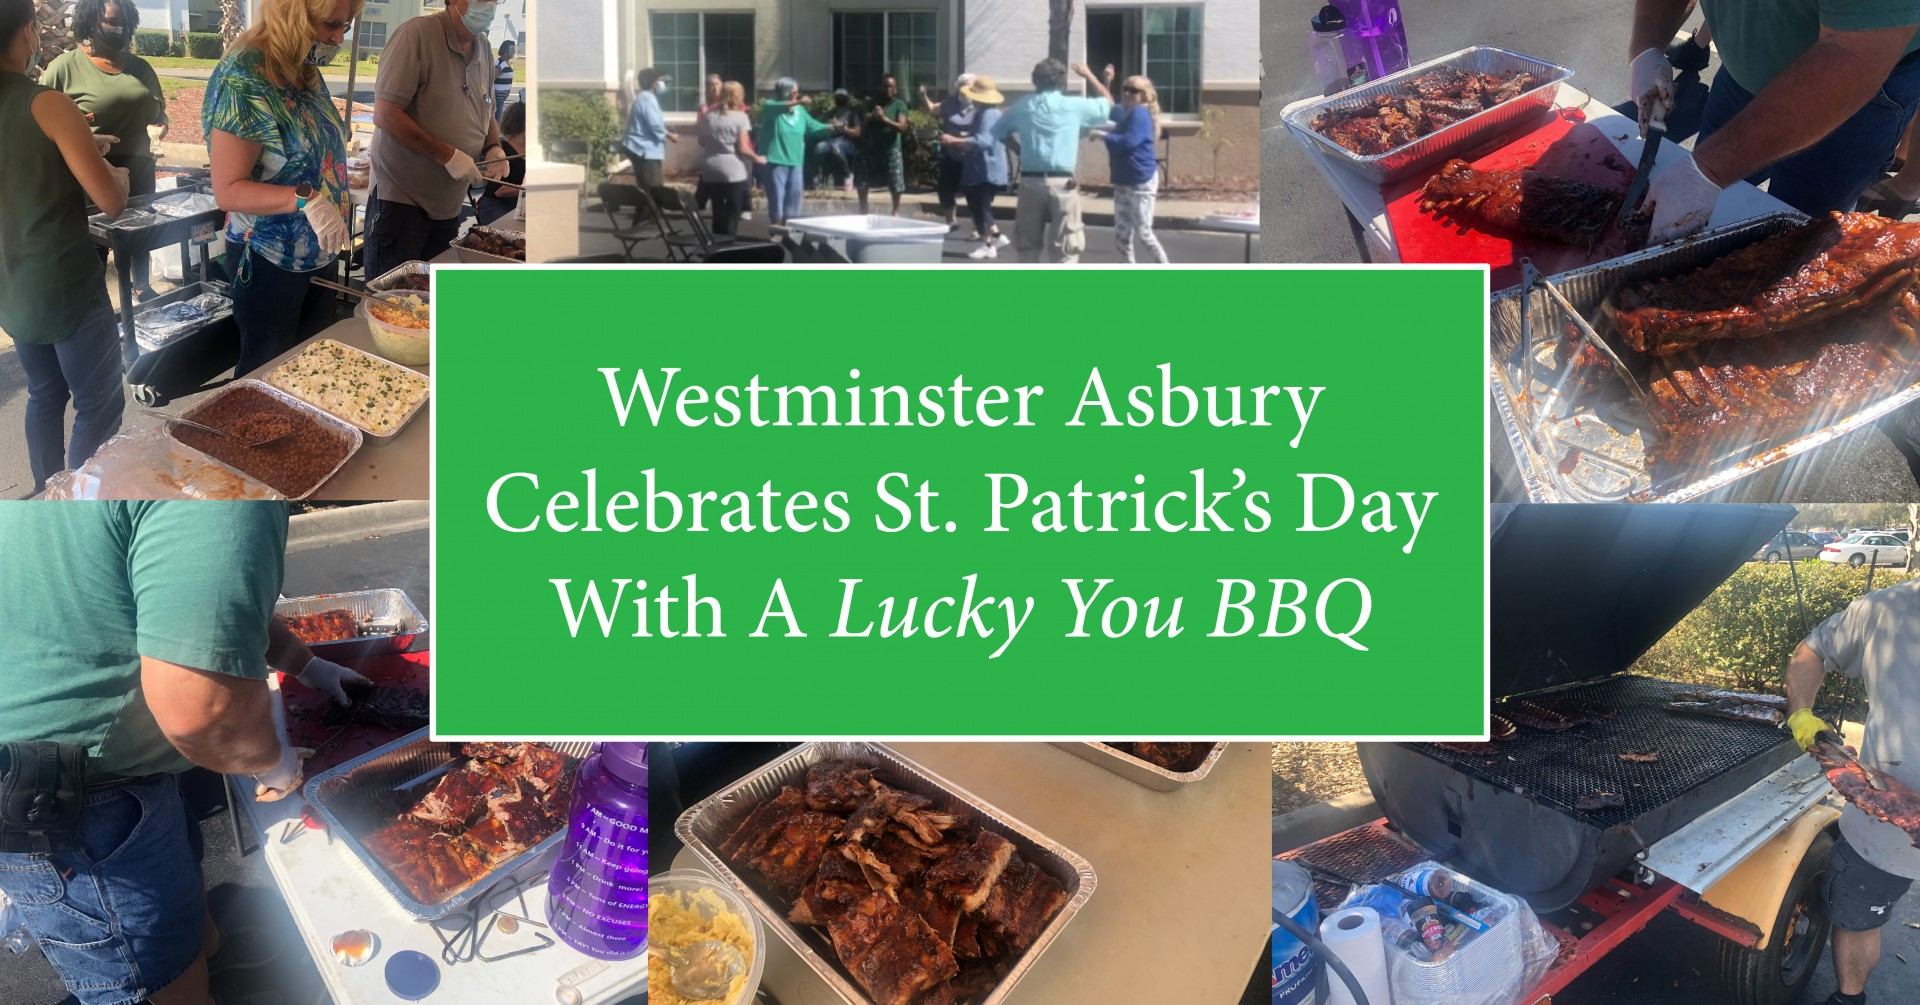 Westminster Asbury Celebrates St. Patrick's Day With A Lucky You BBQ